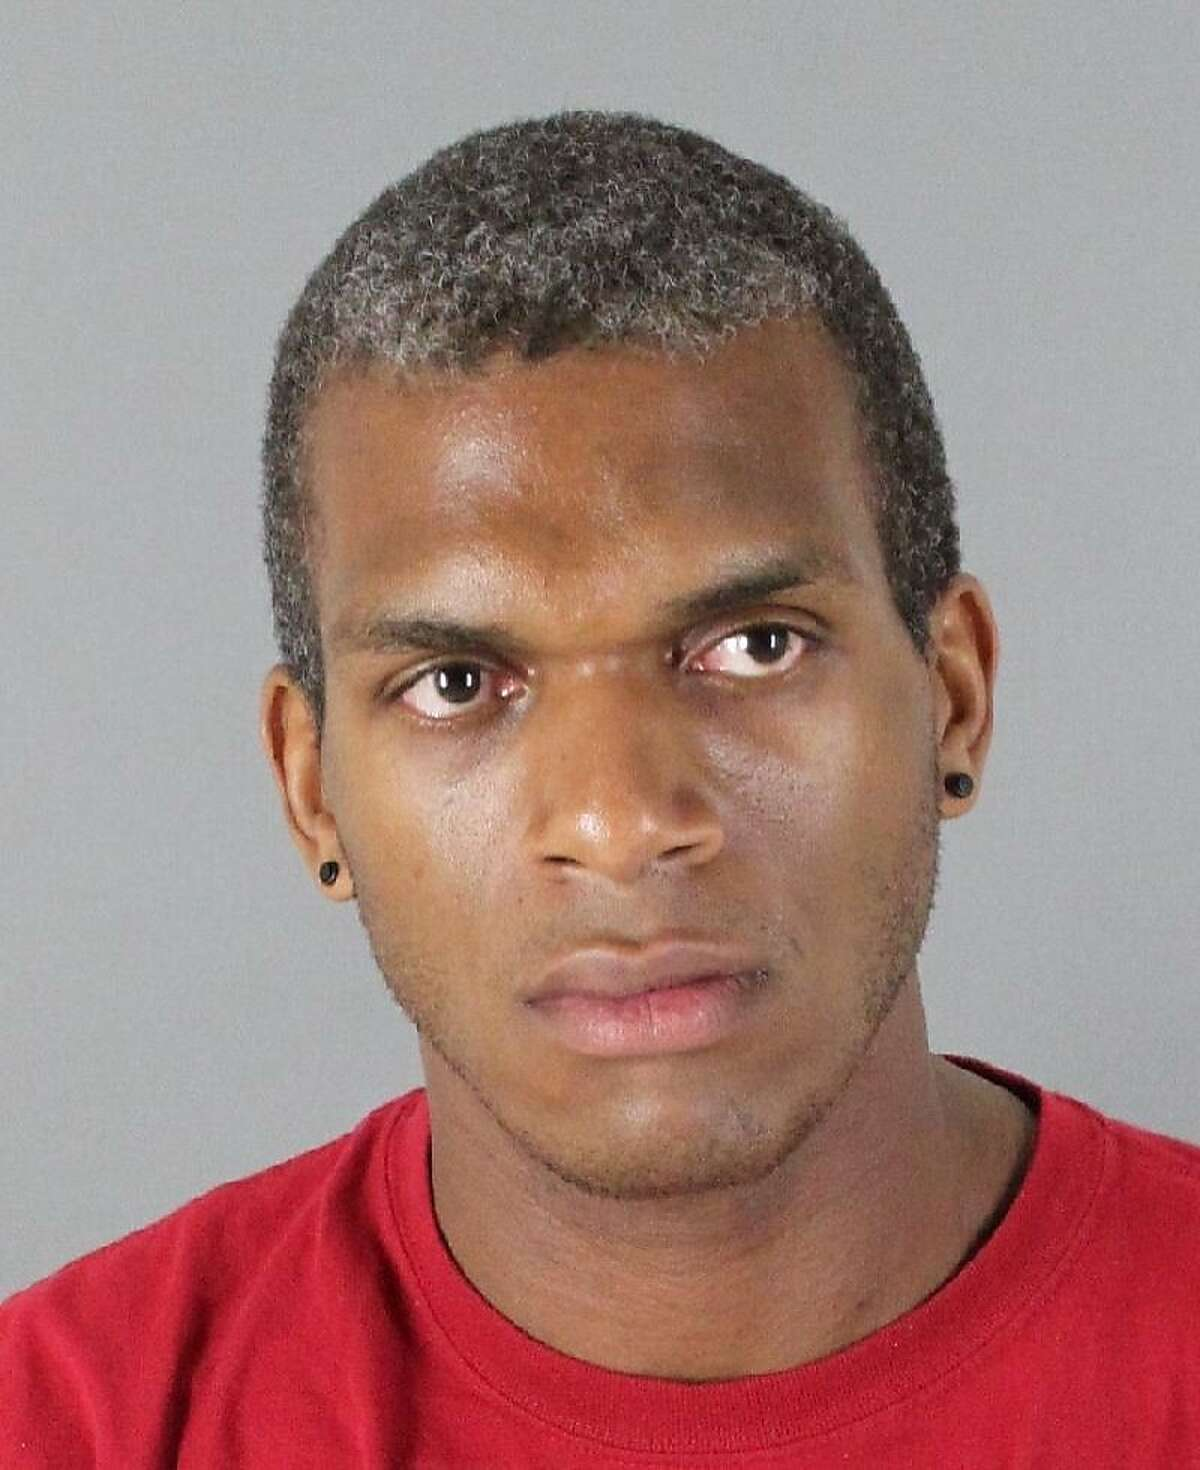 Kwame Harris, 30, is facing charges of assault after prosecutors say he allegedly seriously injured his boyfriend in Menlo Park restaurant in August 2012.